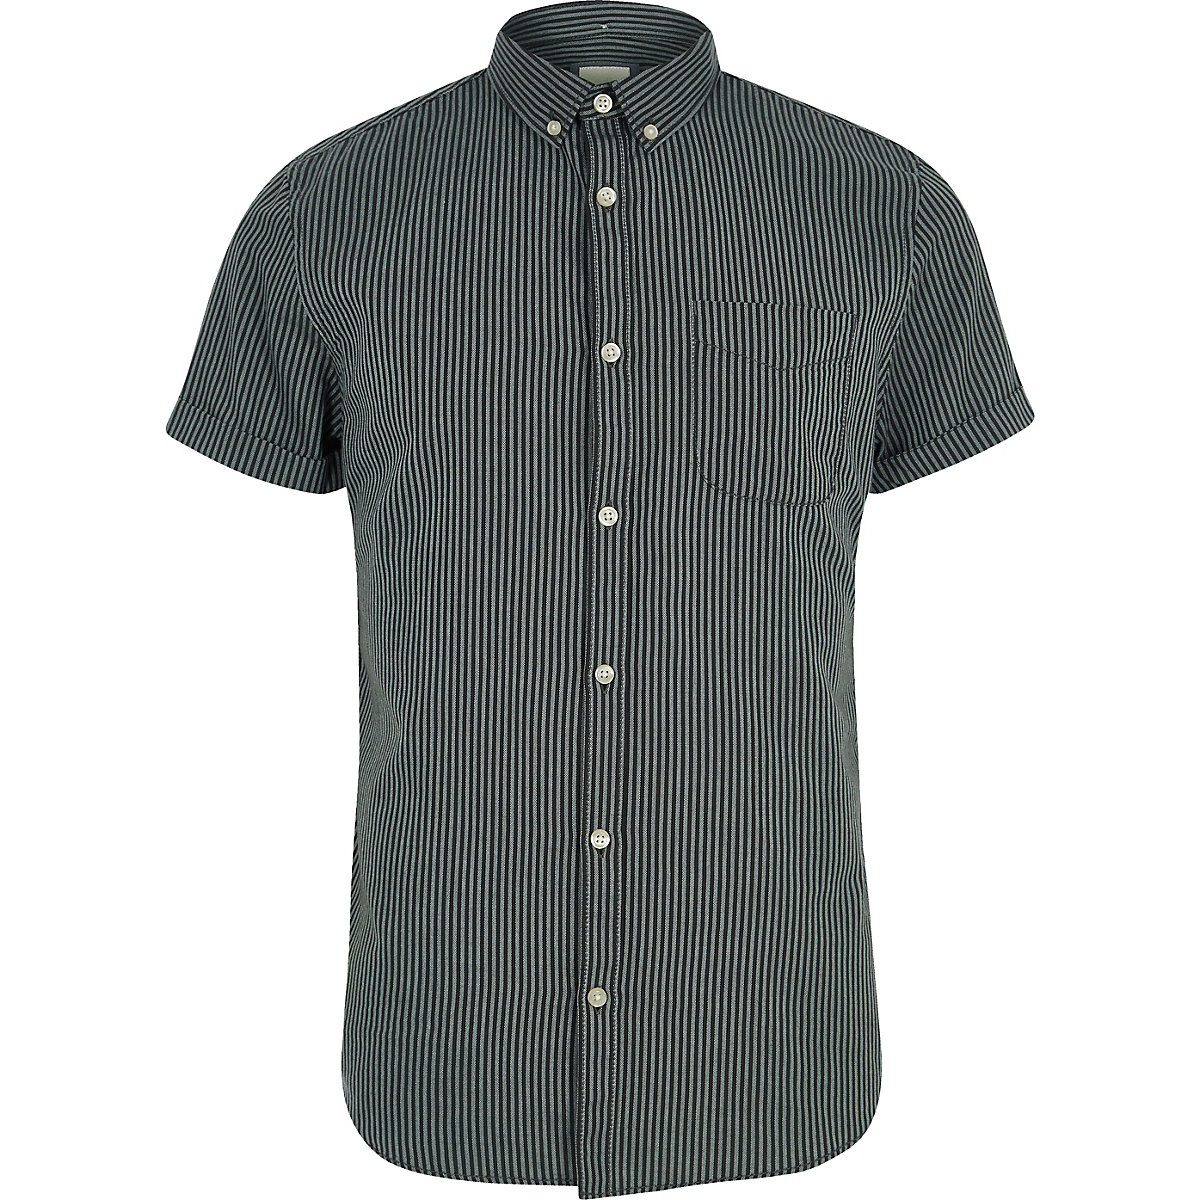 Black stripe short sleeve slim fit shirt